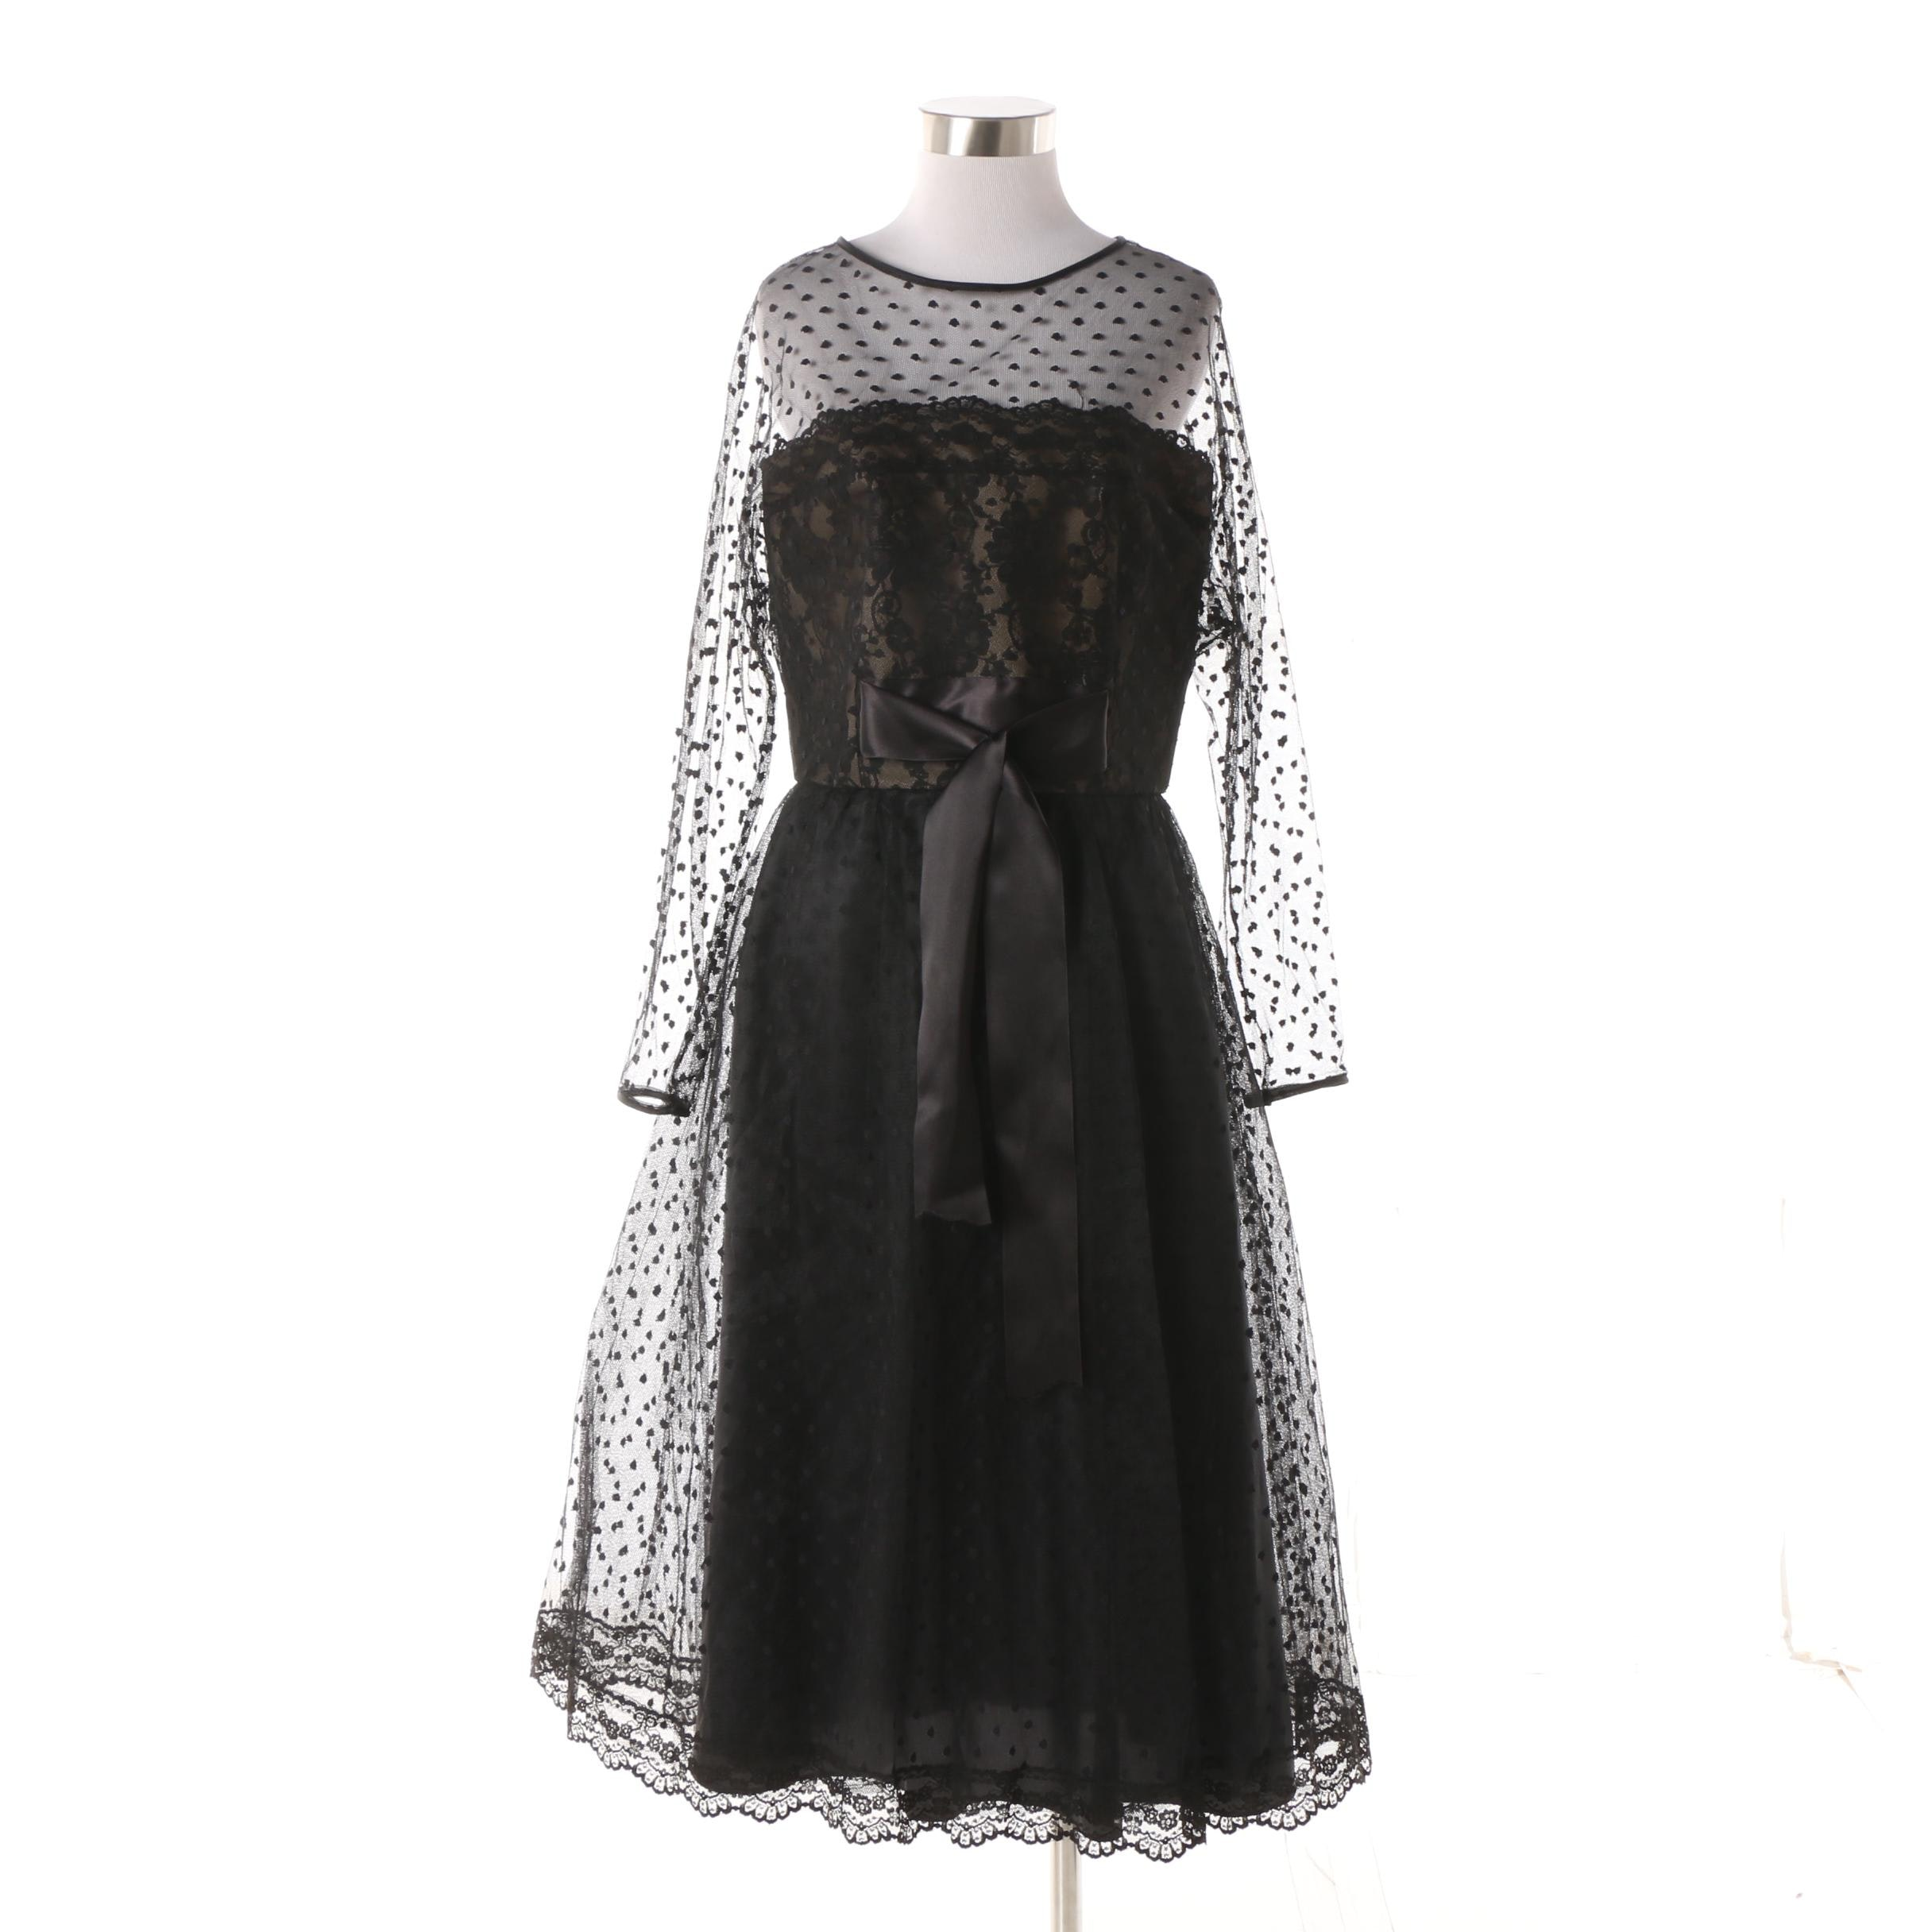 1950s Vintage Victor Costa Black Flocked Lace Cocktail Dress